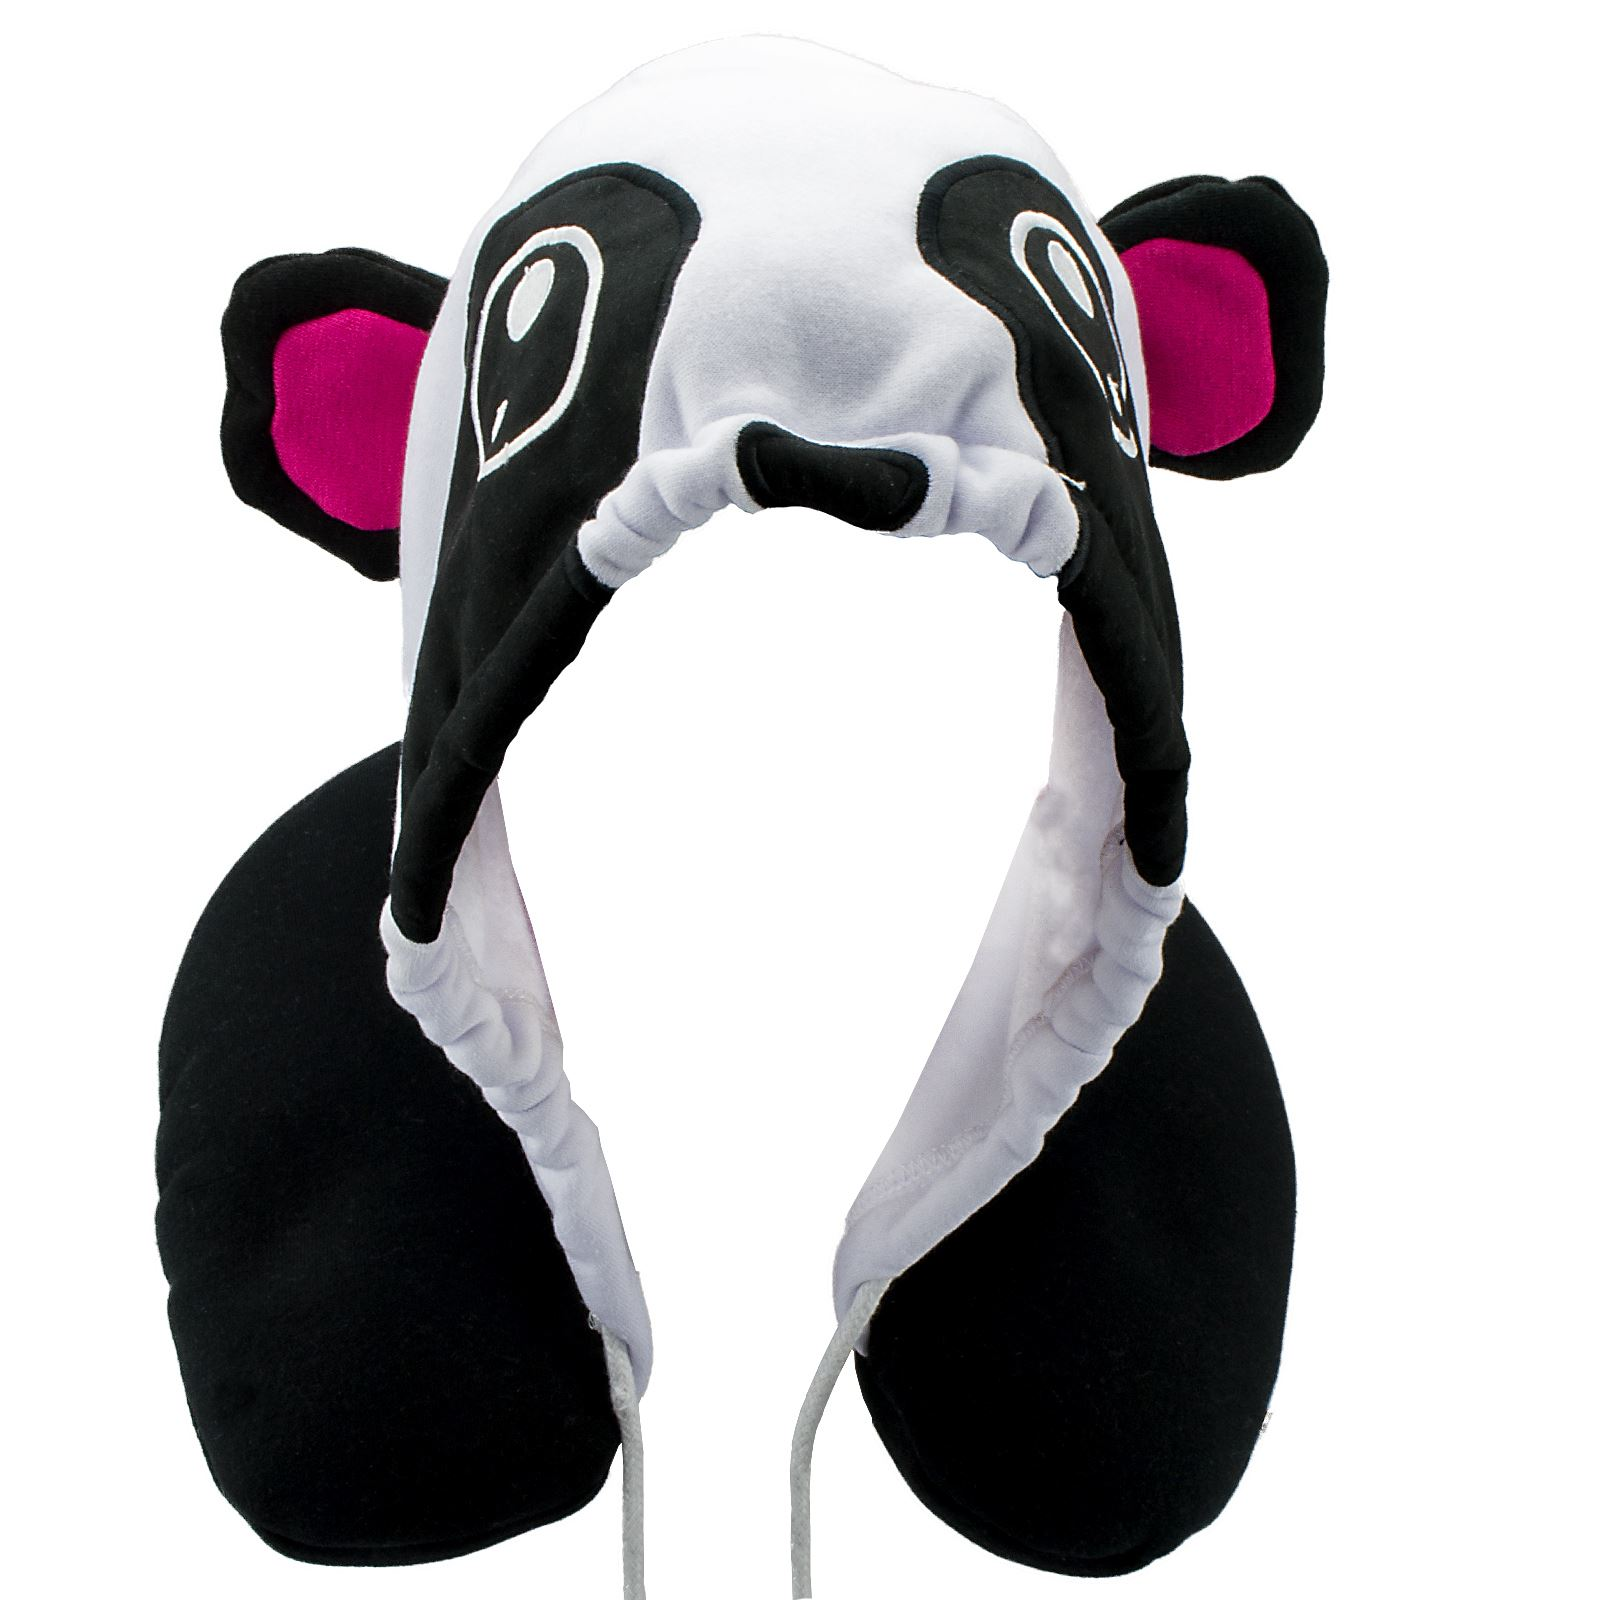 New Animal Hoodie Travel Pillow Micro Bead Neck Foam Adult Car Children One Size eBay